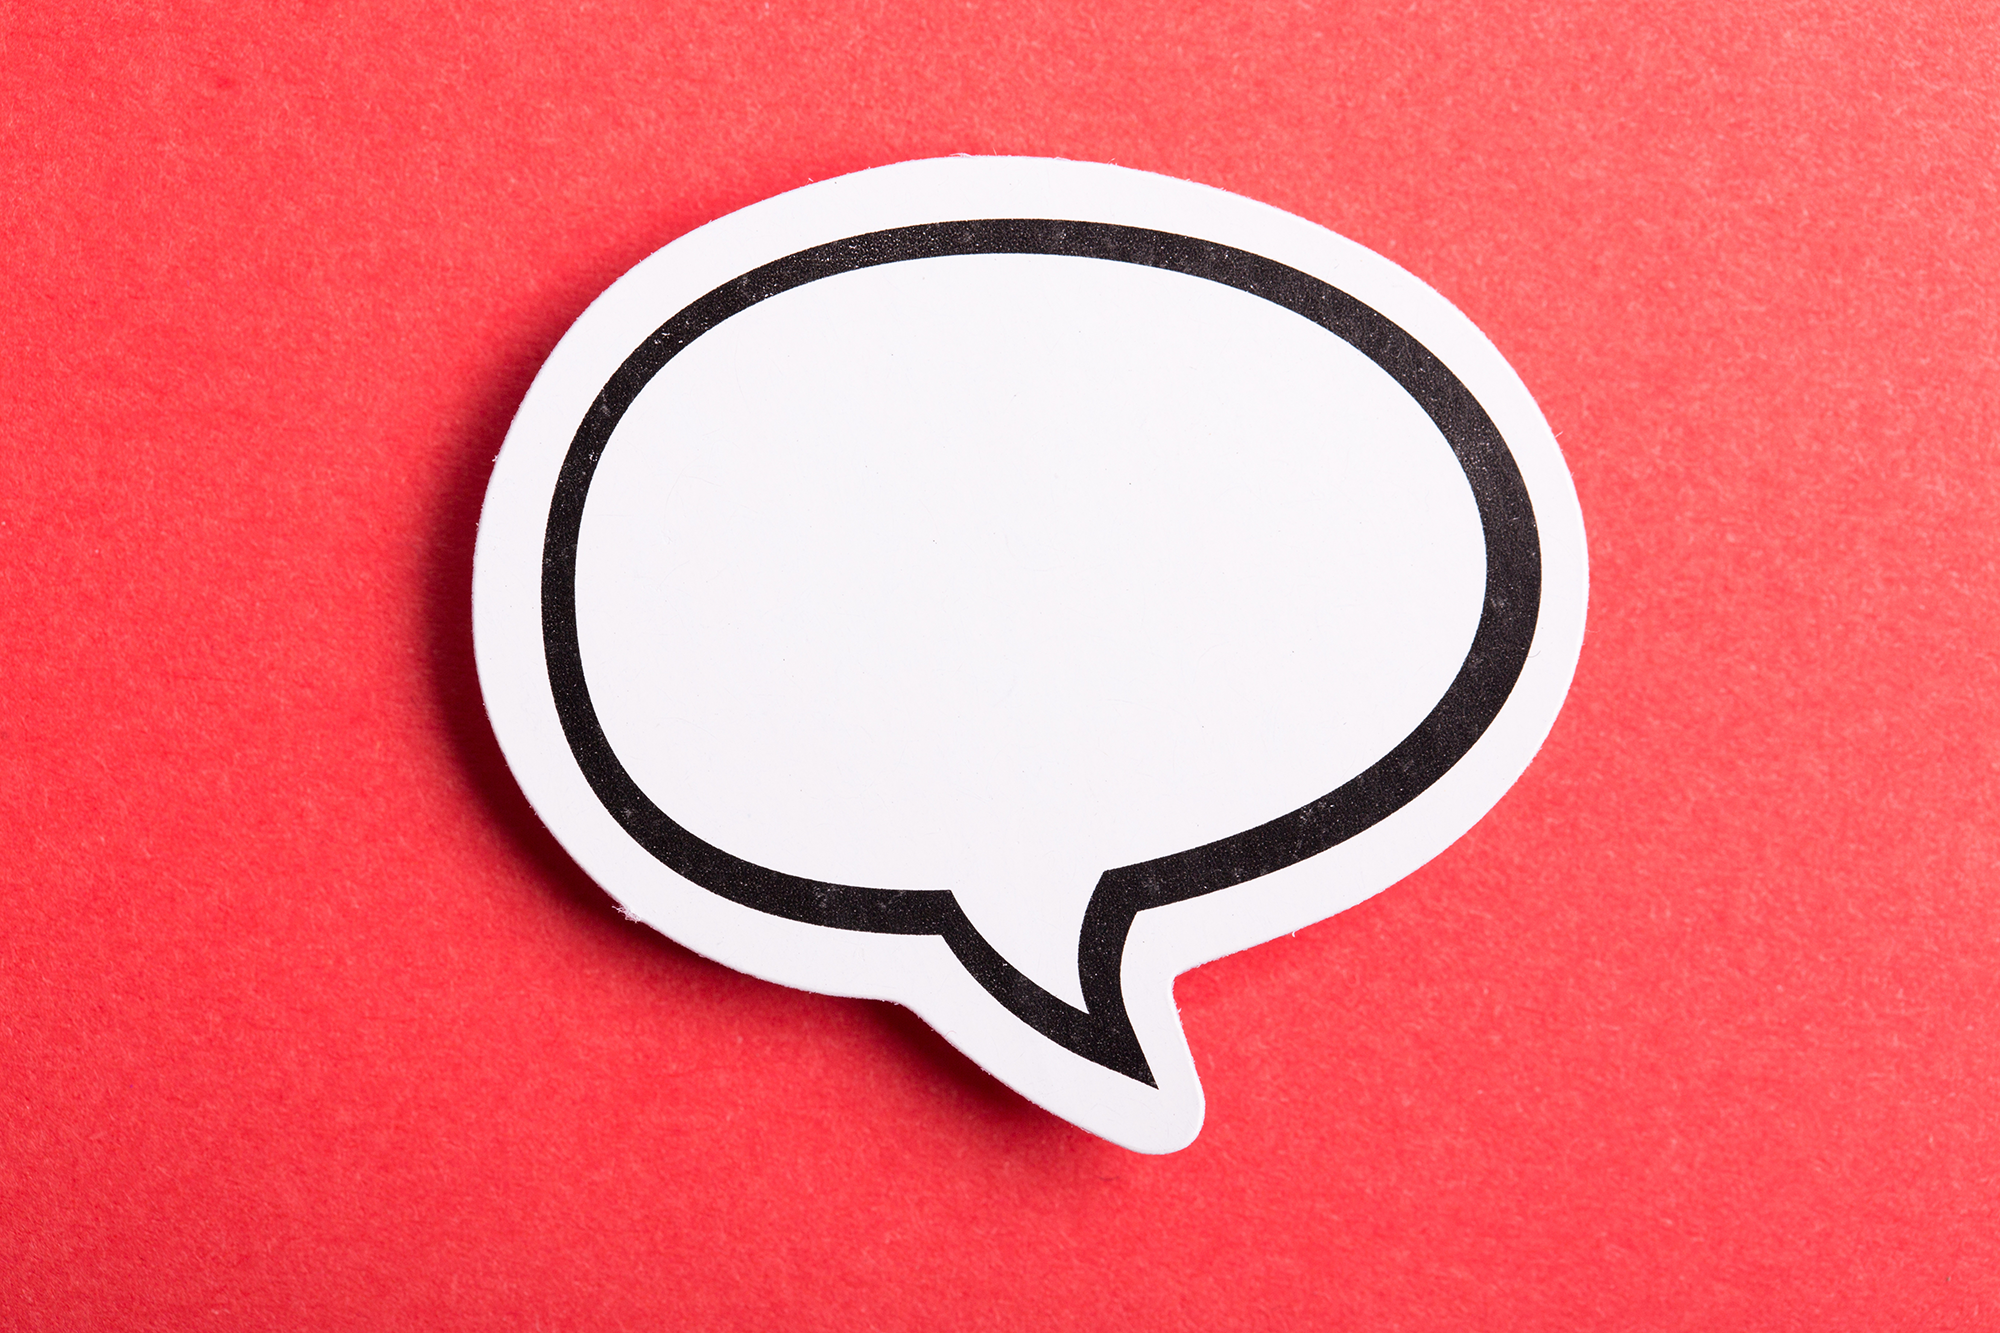 Speech bubble on a red background